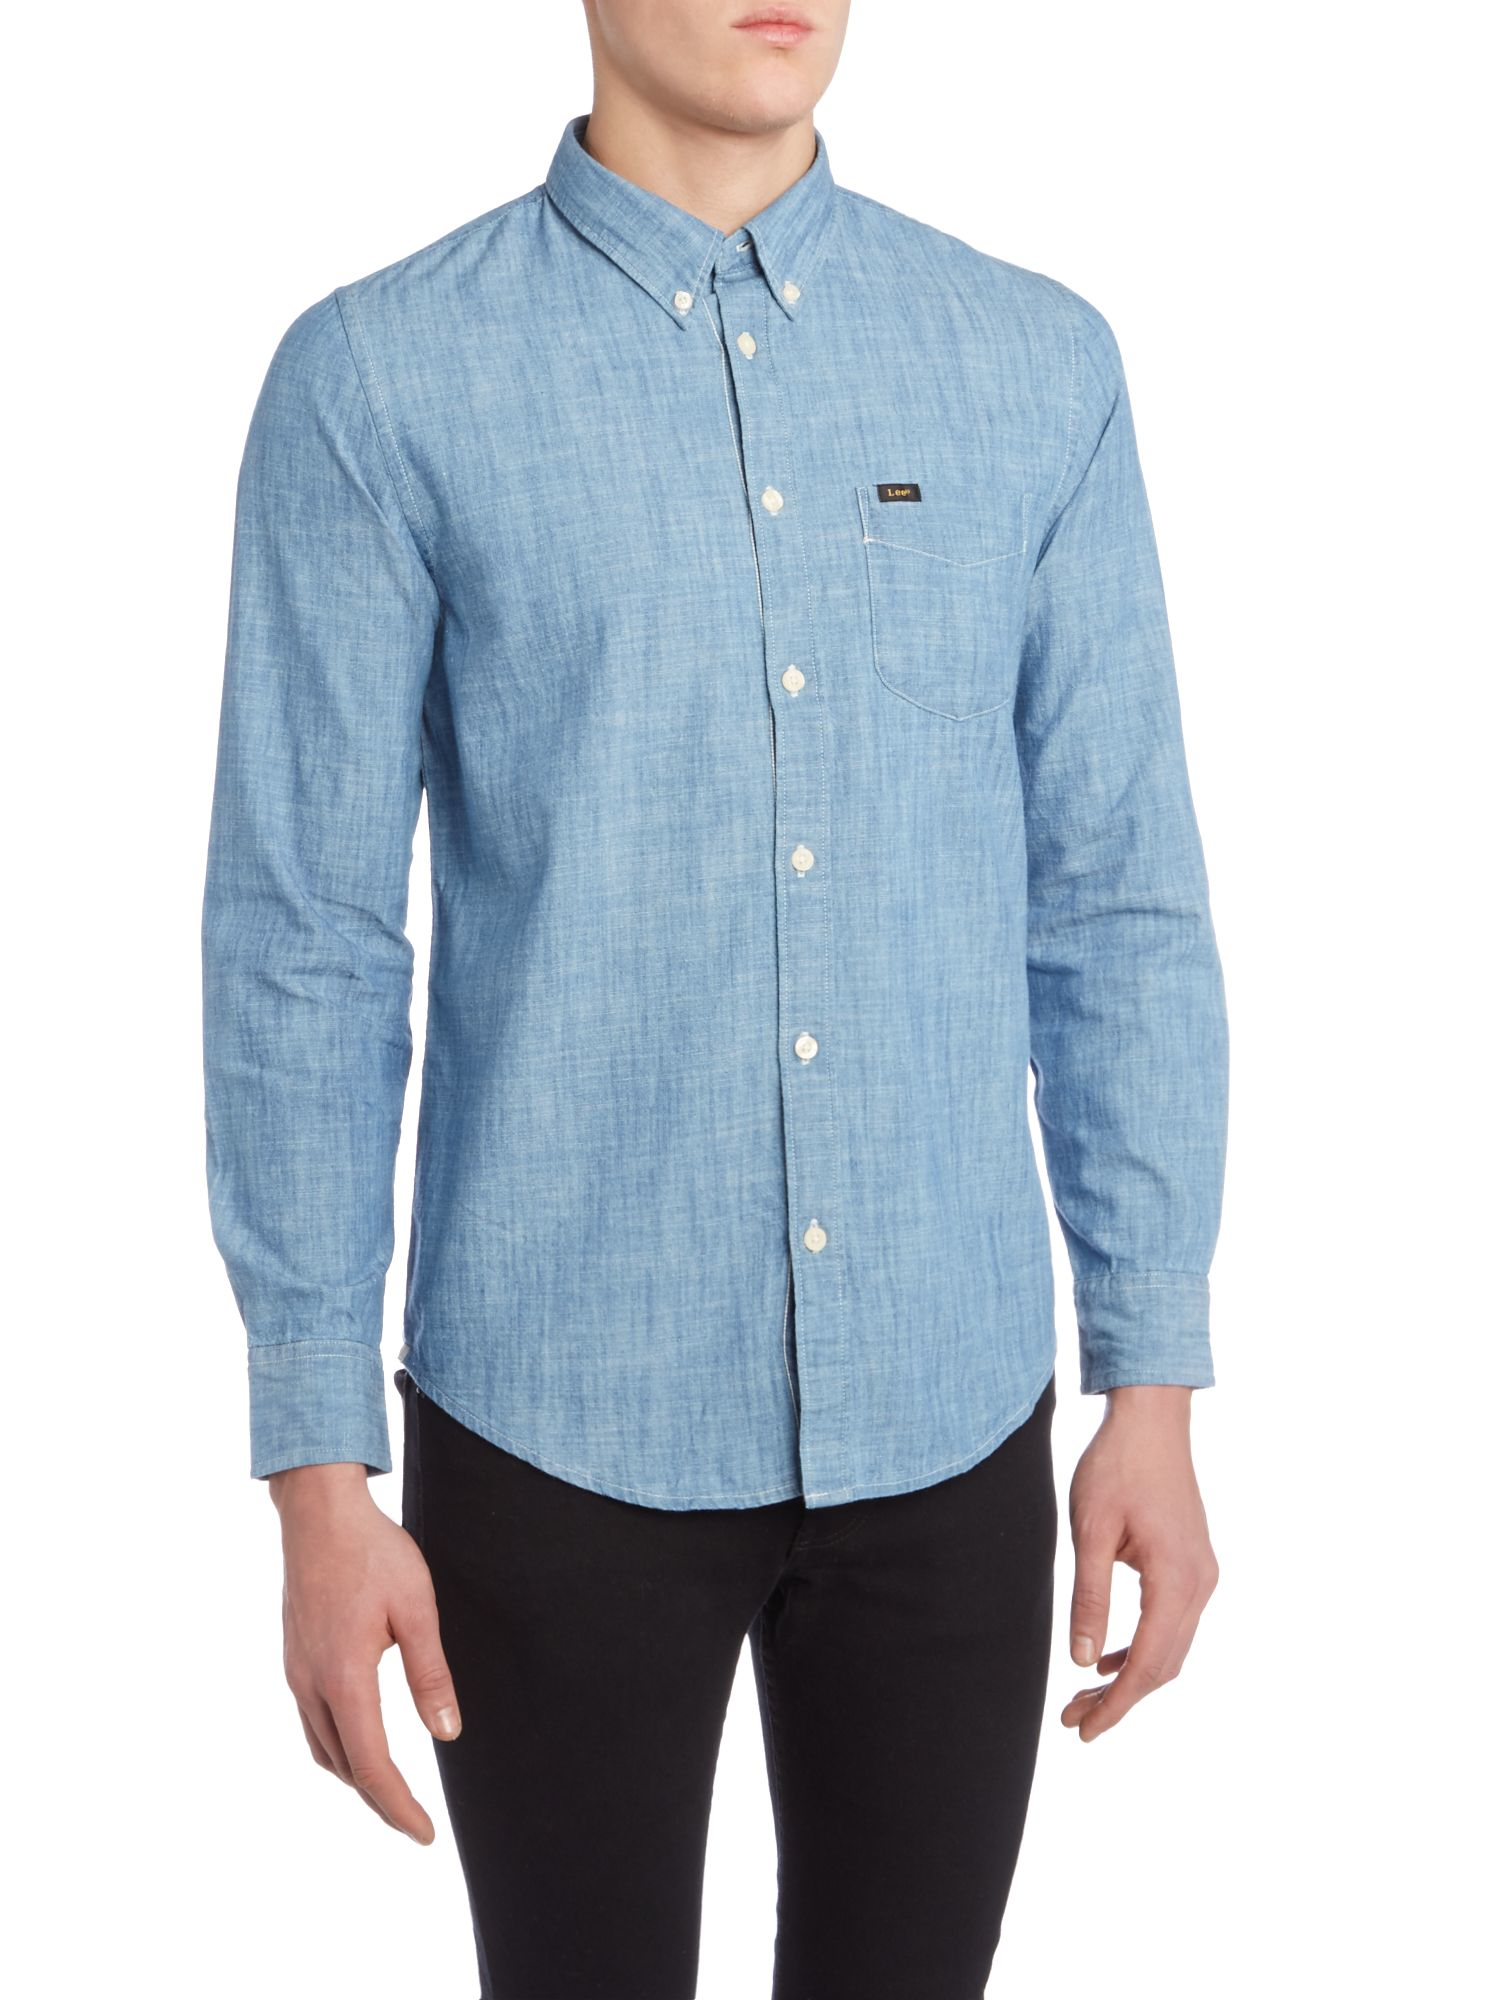 Lyst - Lee Jeans Regular Fit Light Blue Denim Long Sve Shirt In Blue For Men